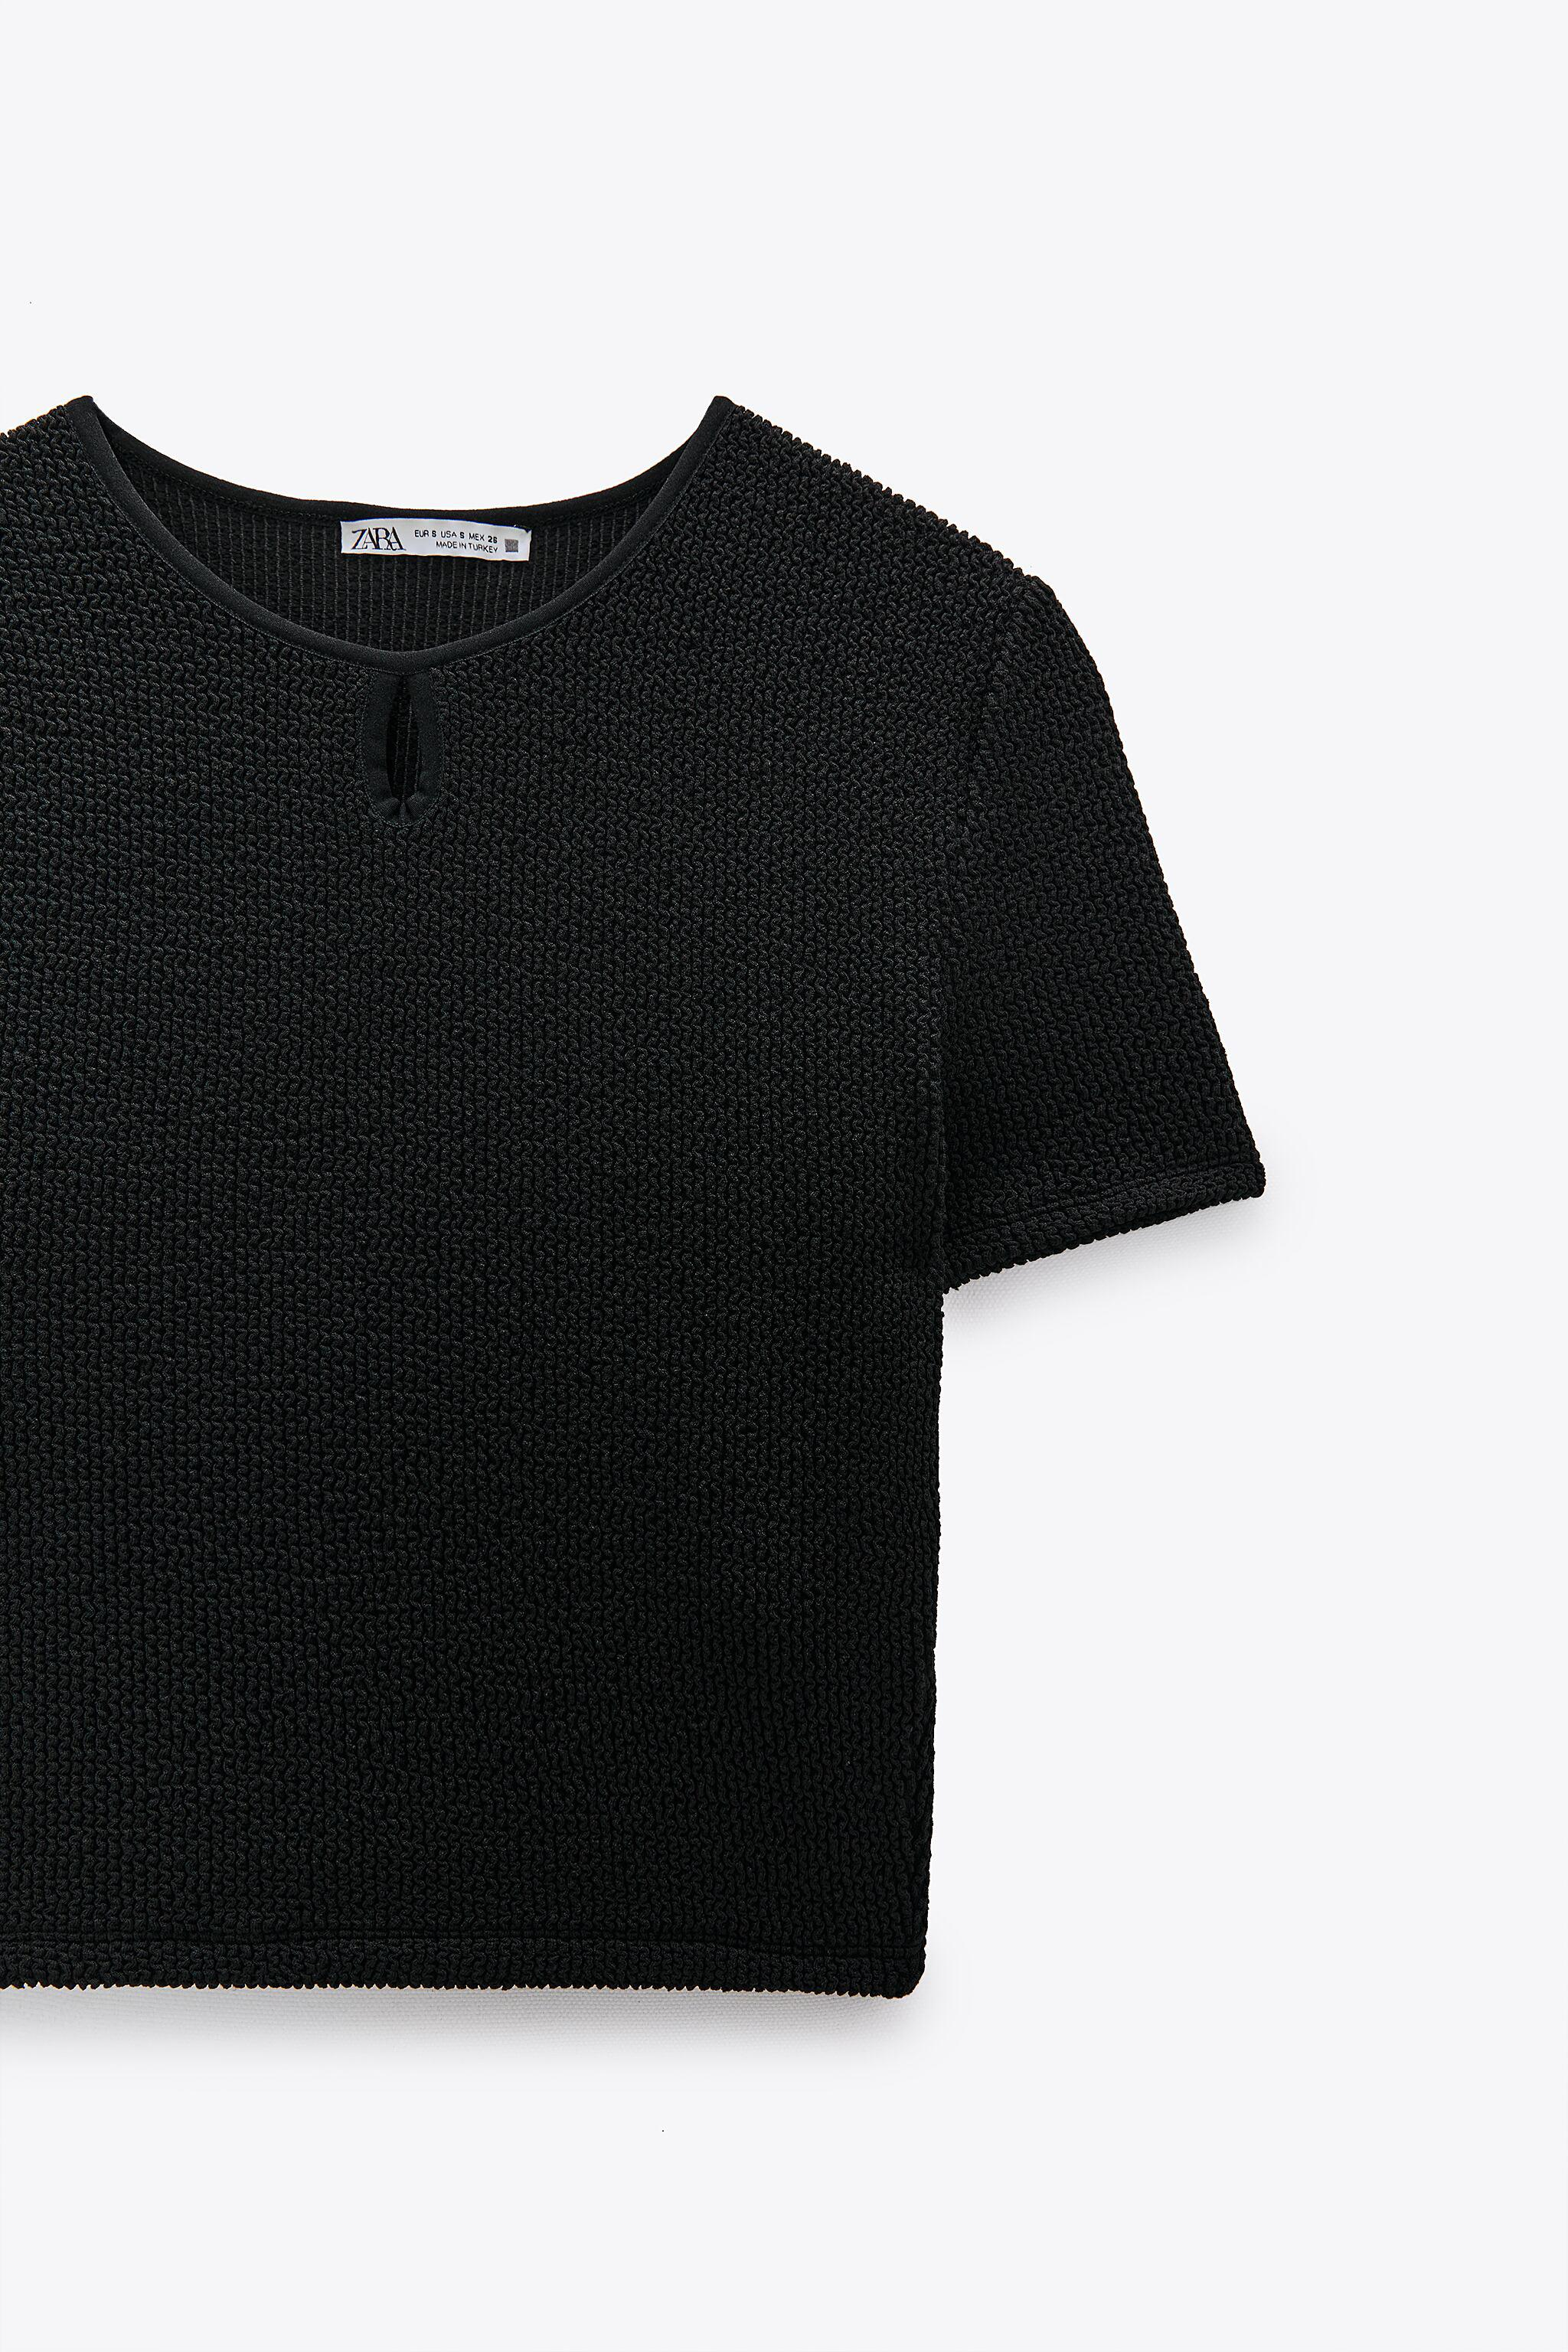 CROPPED TEXTURED WEAVE SHIRT 4